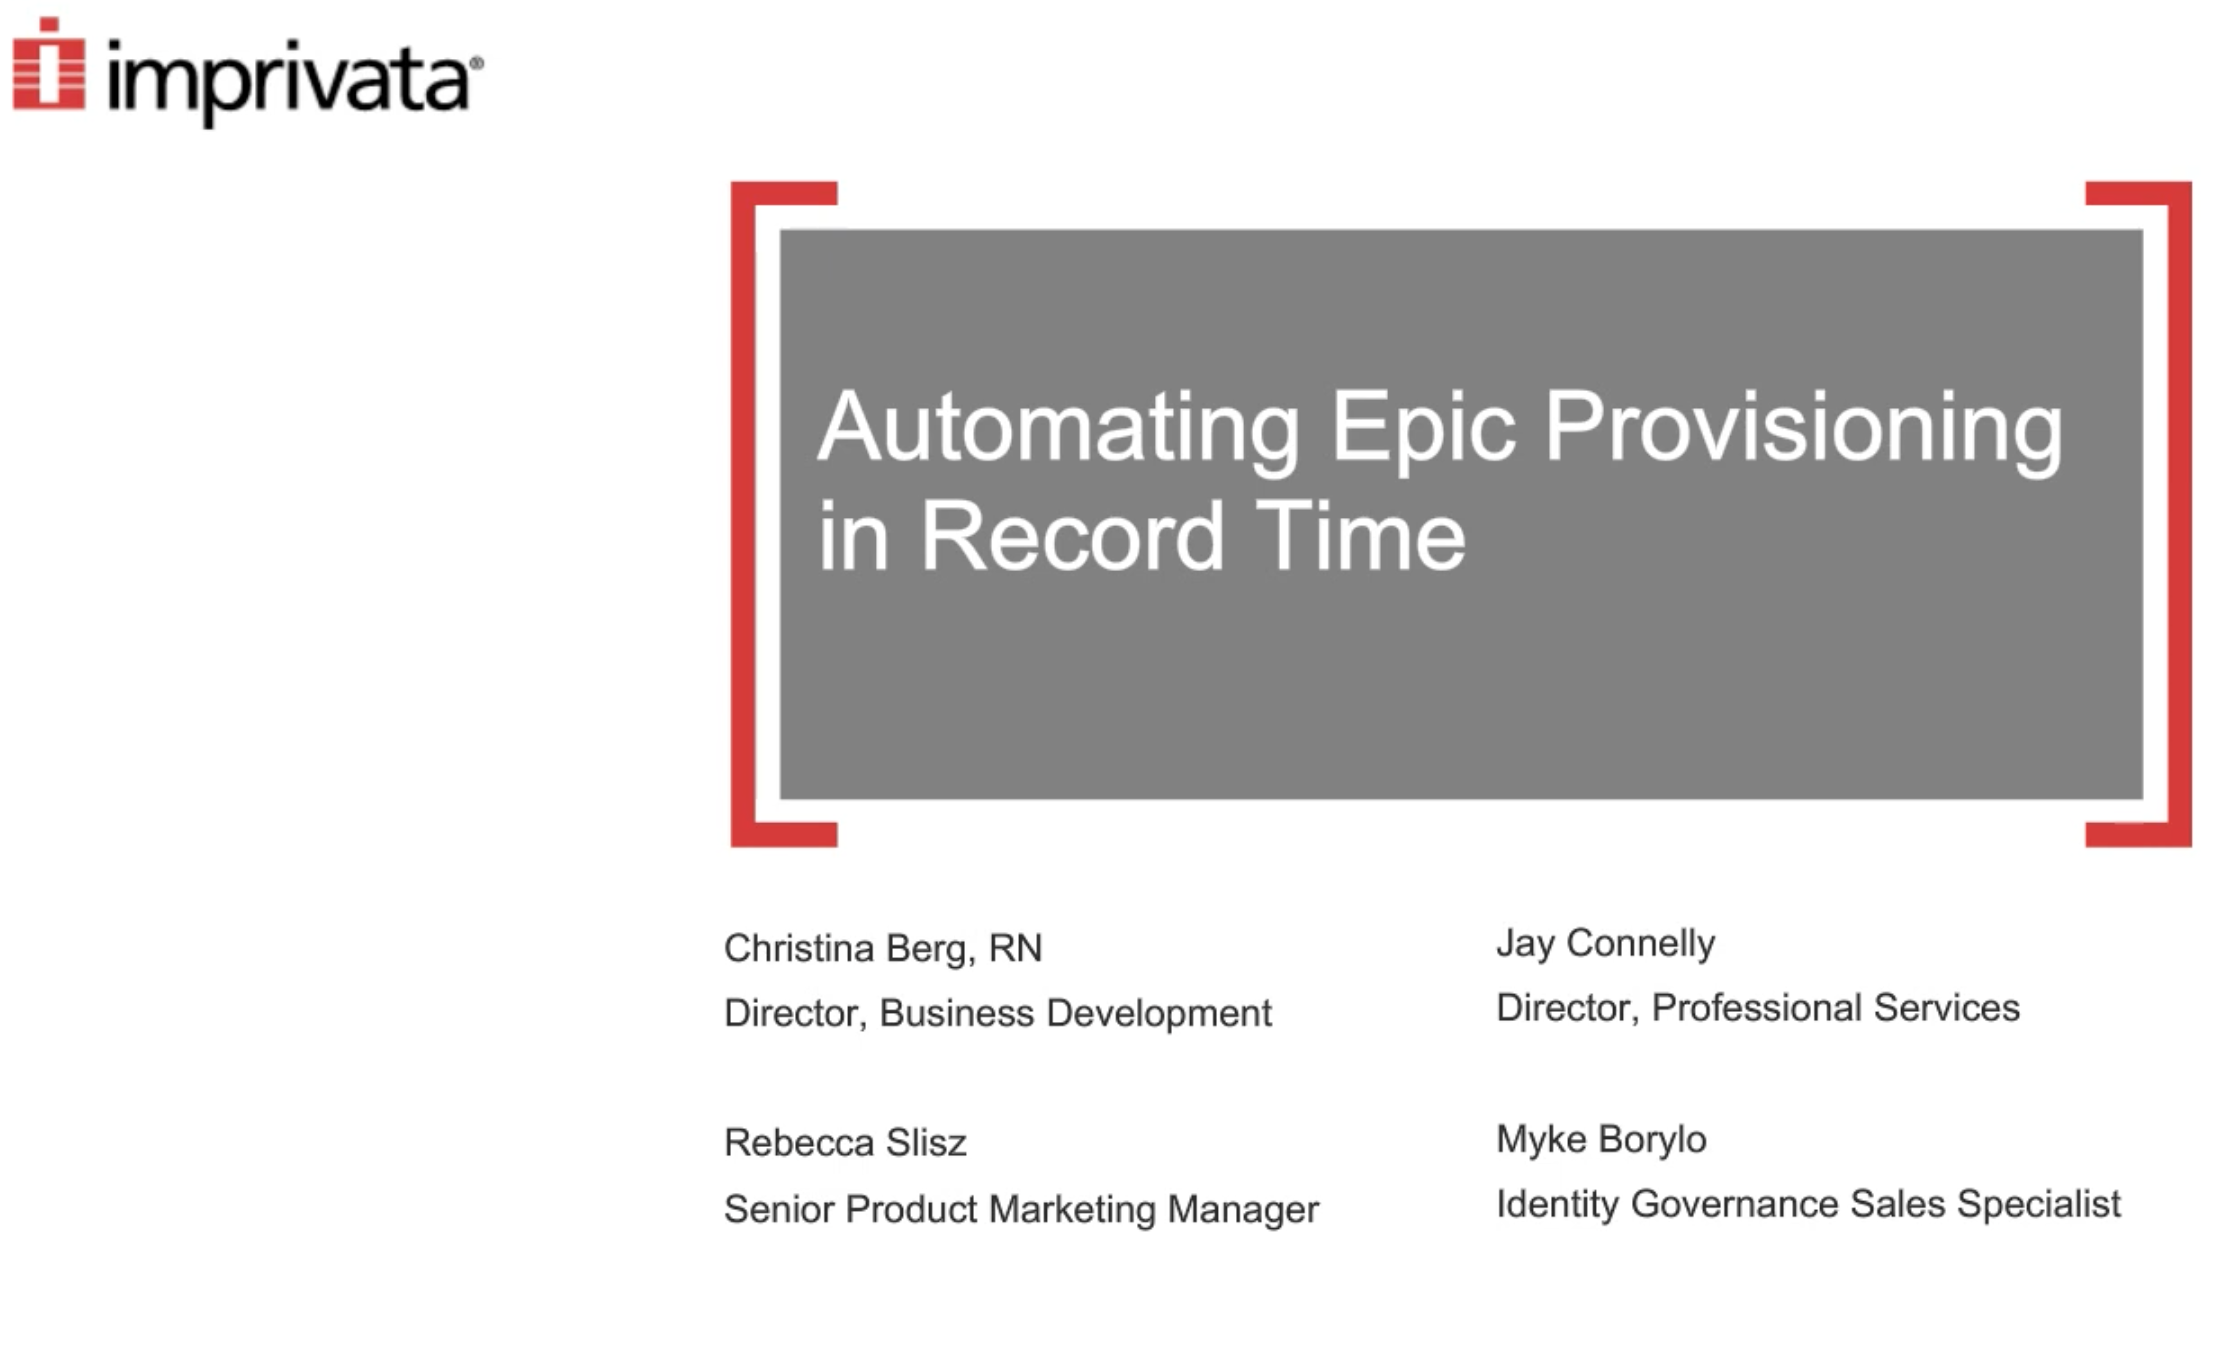 Automating Epic Provisioning in Record Time